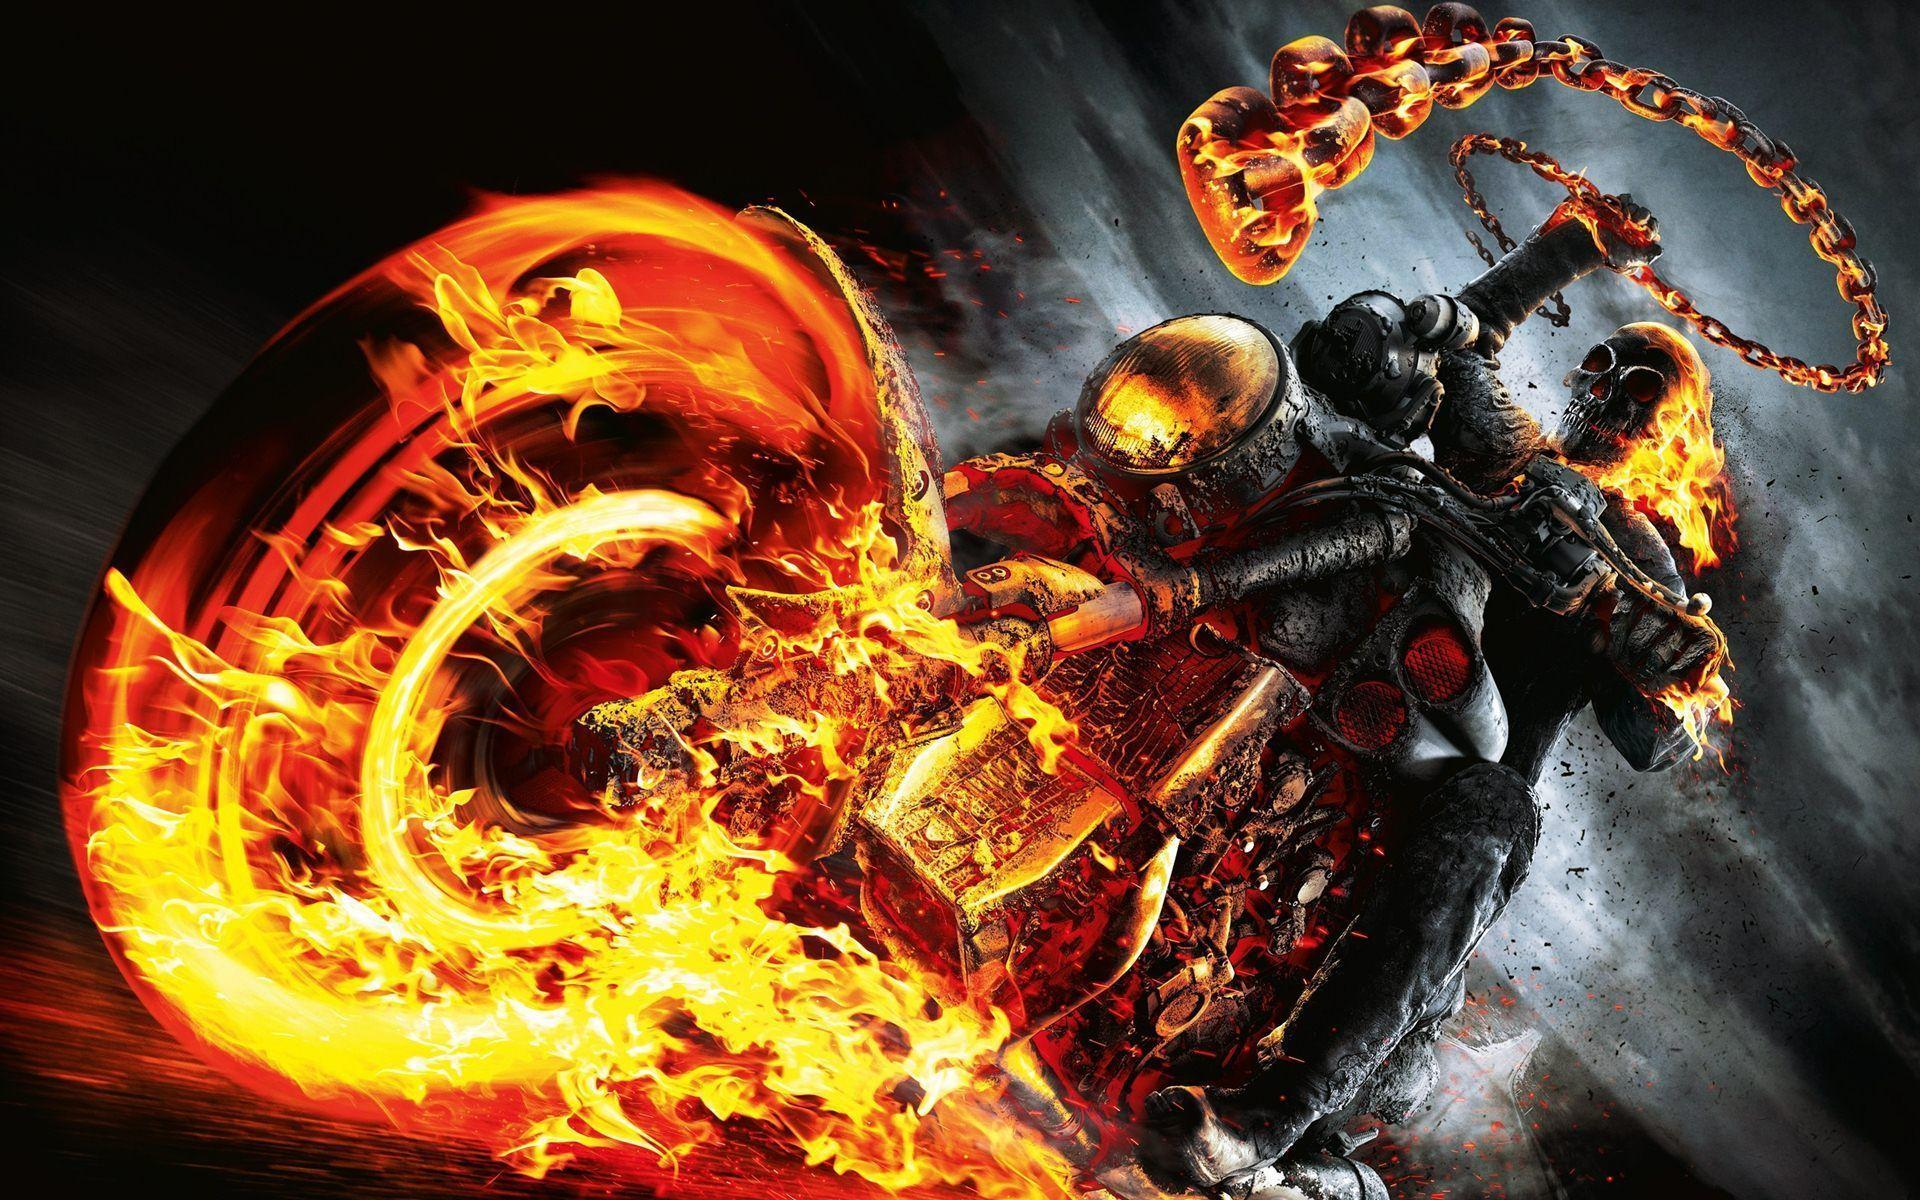 Ghost Rider Spirit Of Vengeance Skull Fire Bike Wallpapers .